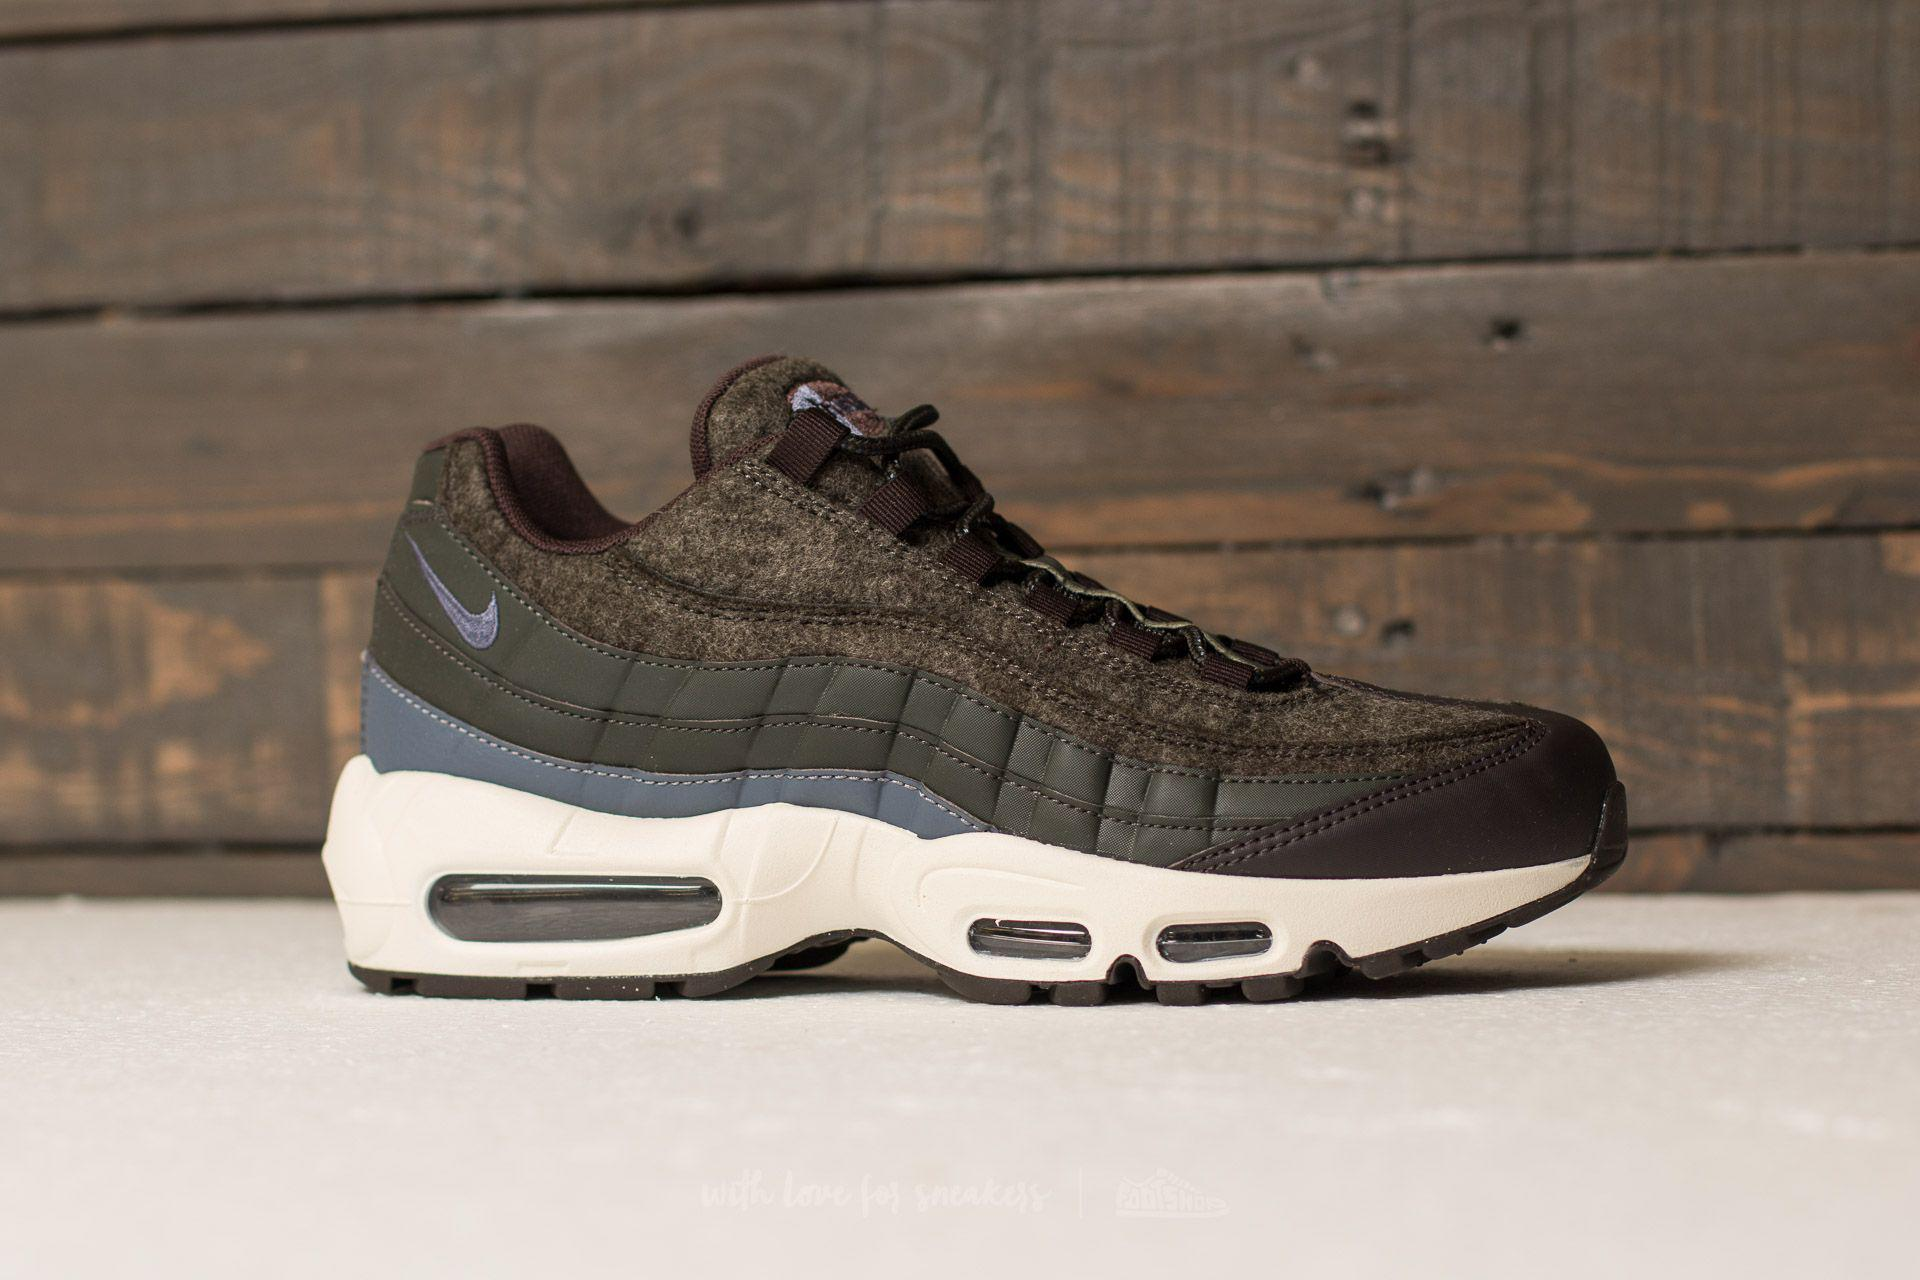 Carbon Nike For 95 Premium Air Sequoia Men Light Max Lyst 7FTwa